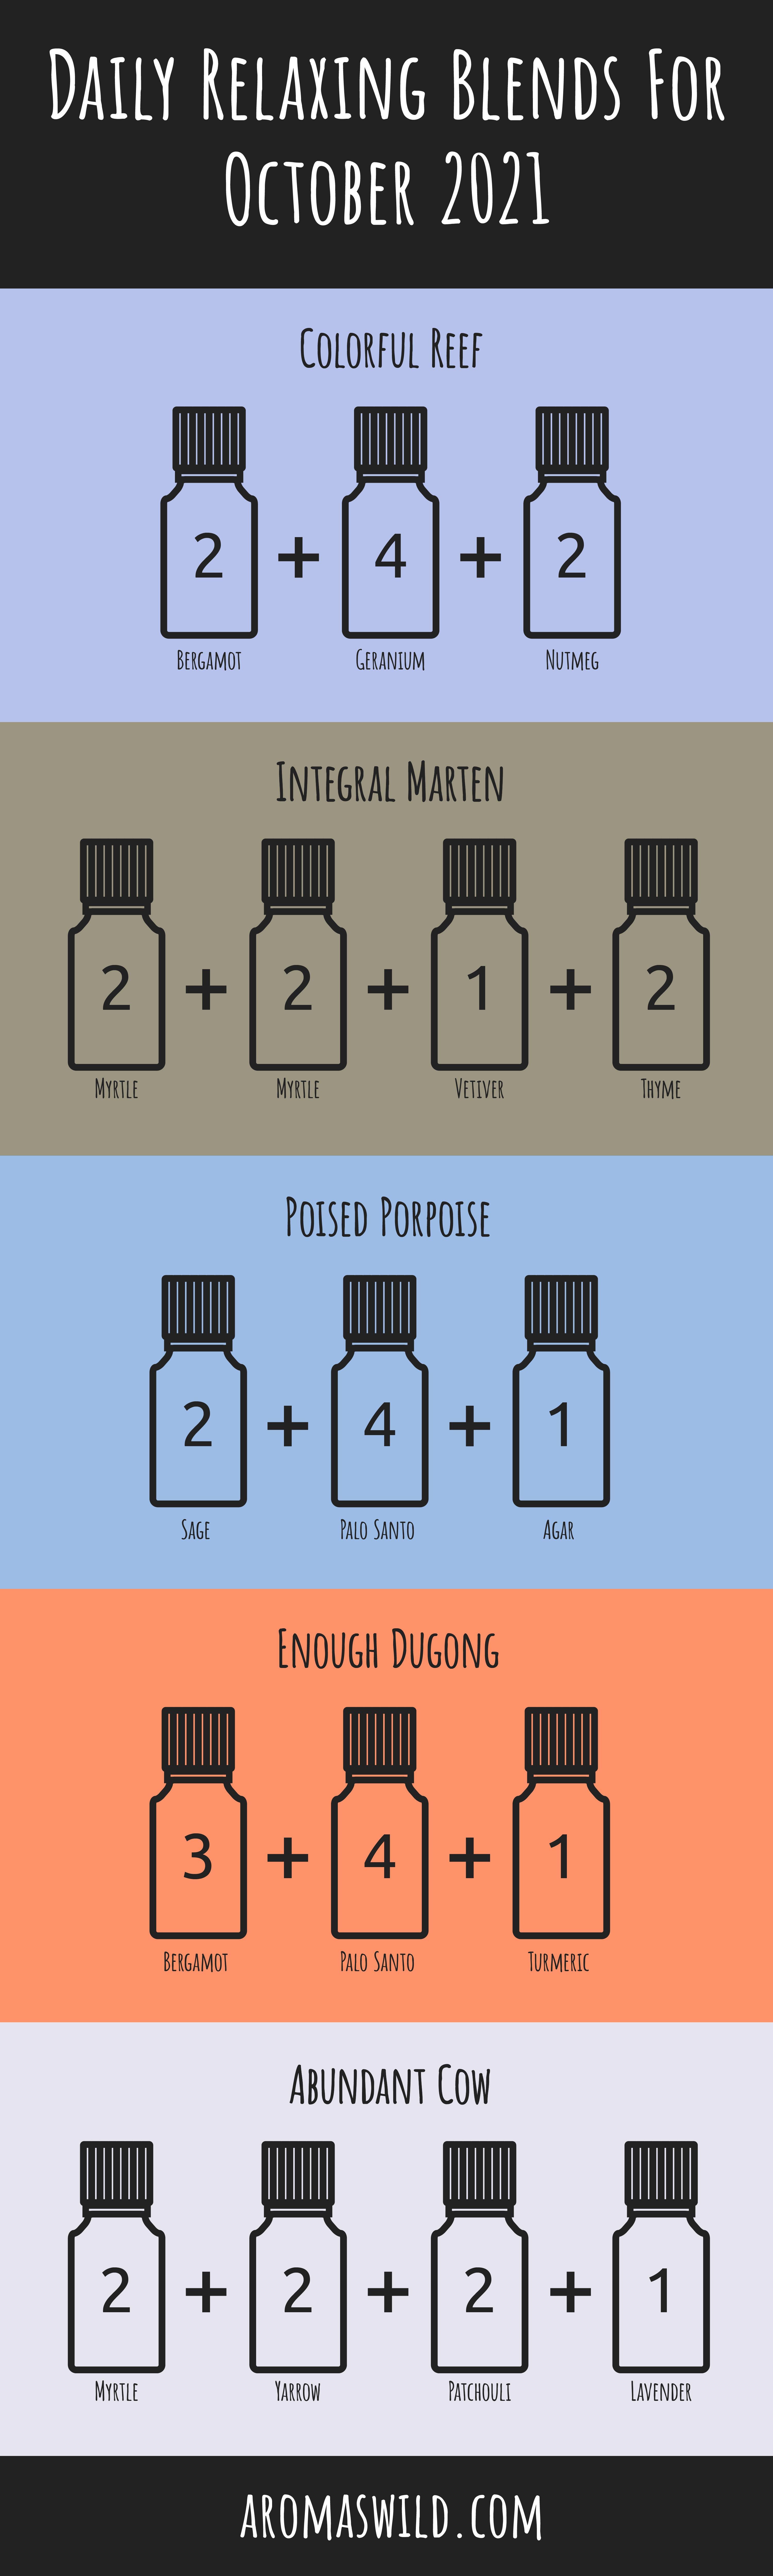 different essential oil blends – Daily Relaxing Blends For 21 October 2021